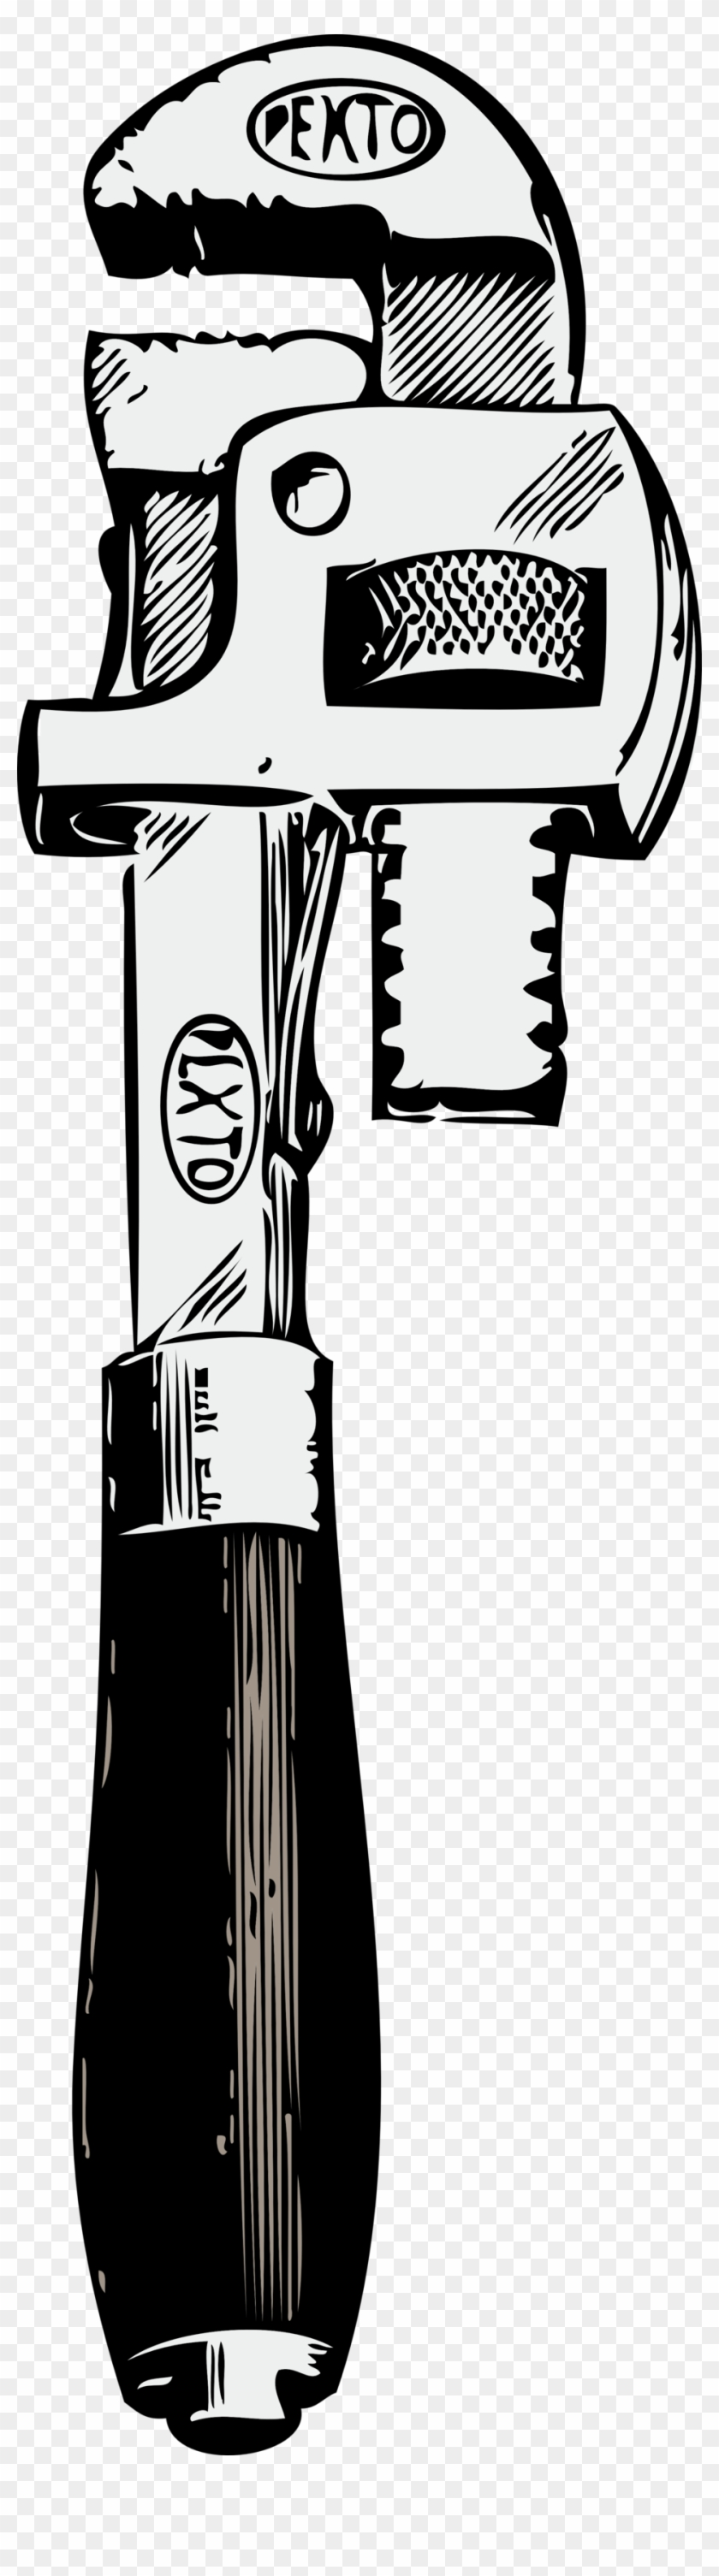 Pipe Wrench - Pipe Wrench Clipart #103243